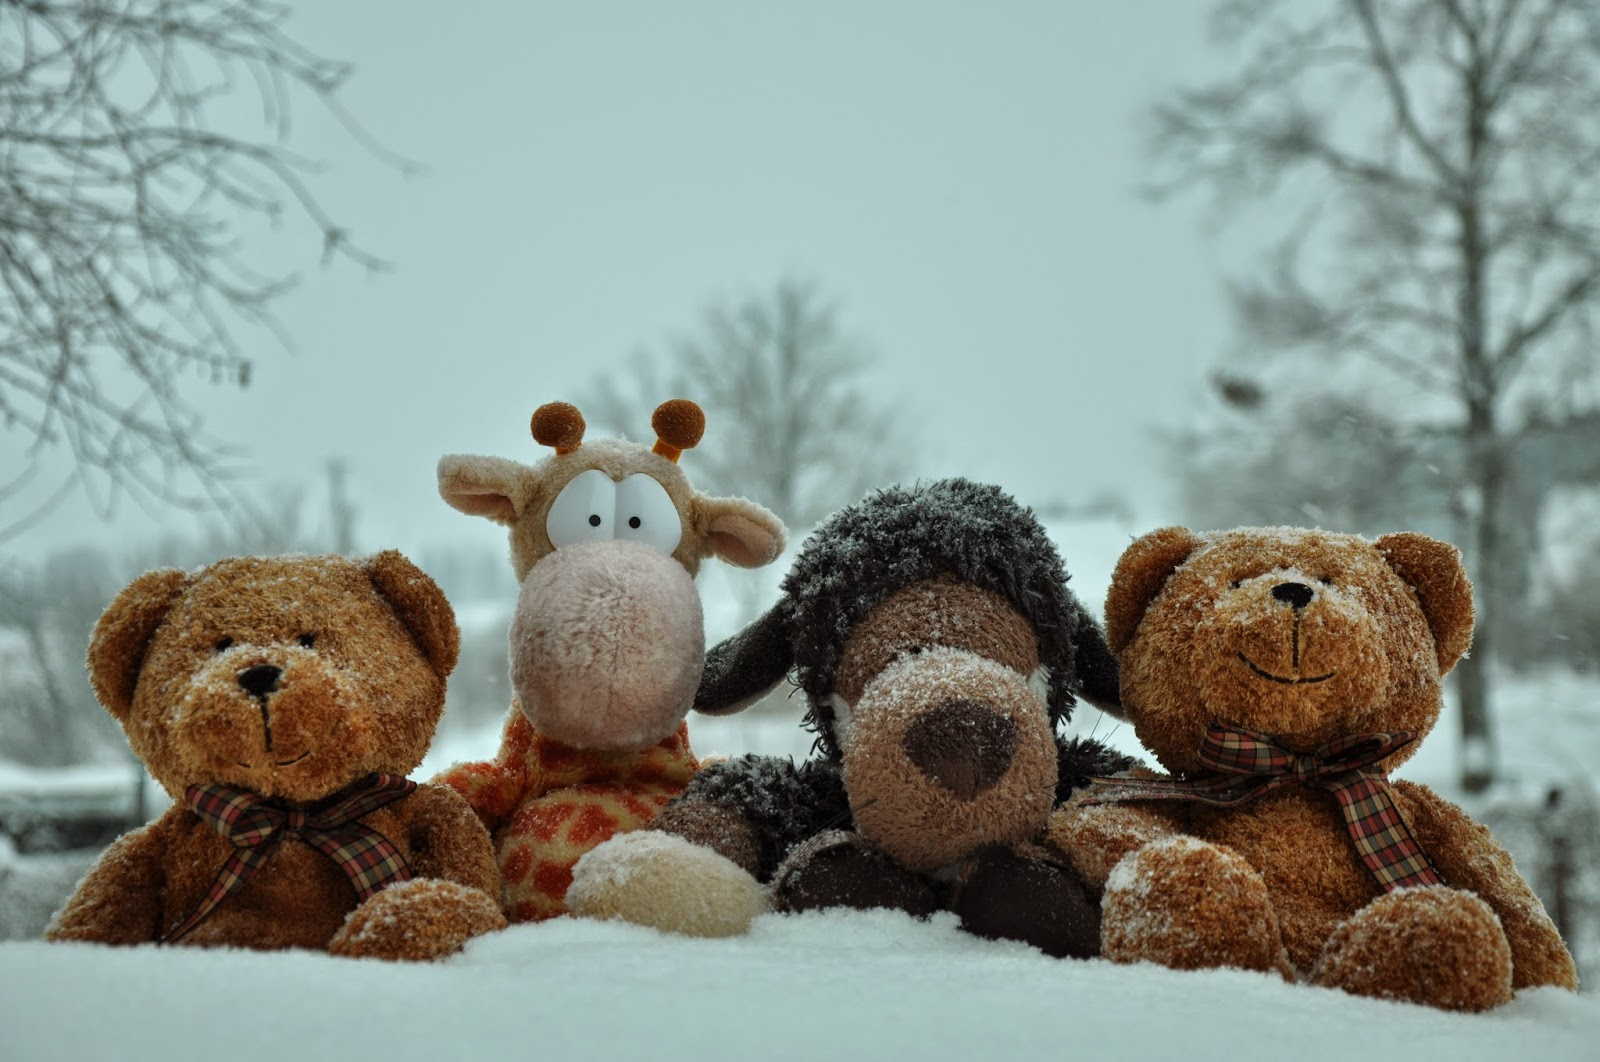 teddy-bear-posing-with-friends-winter-snow-4288x2848.jpg